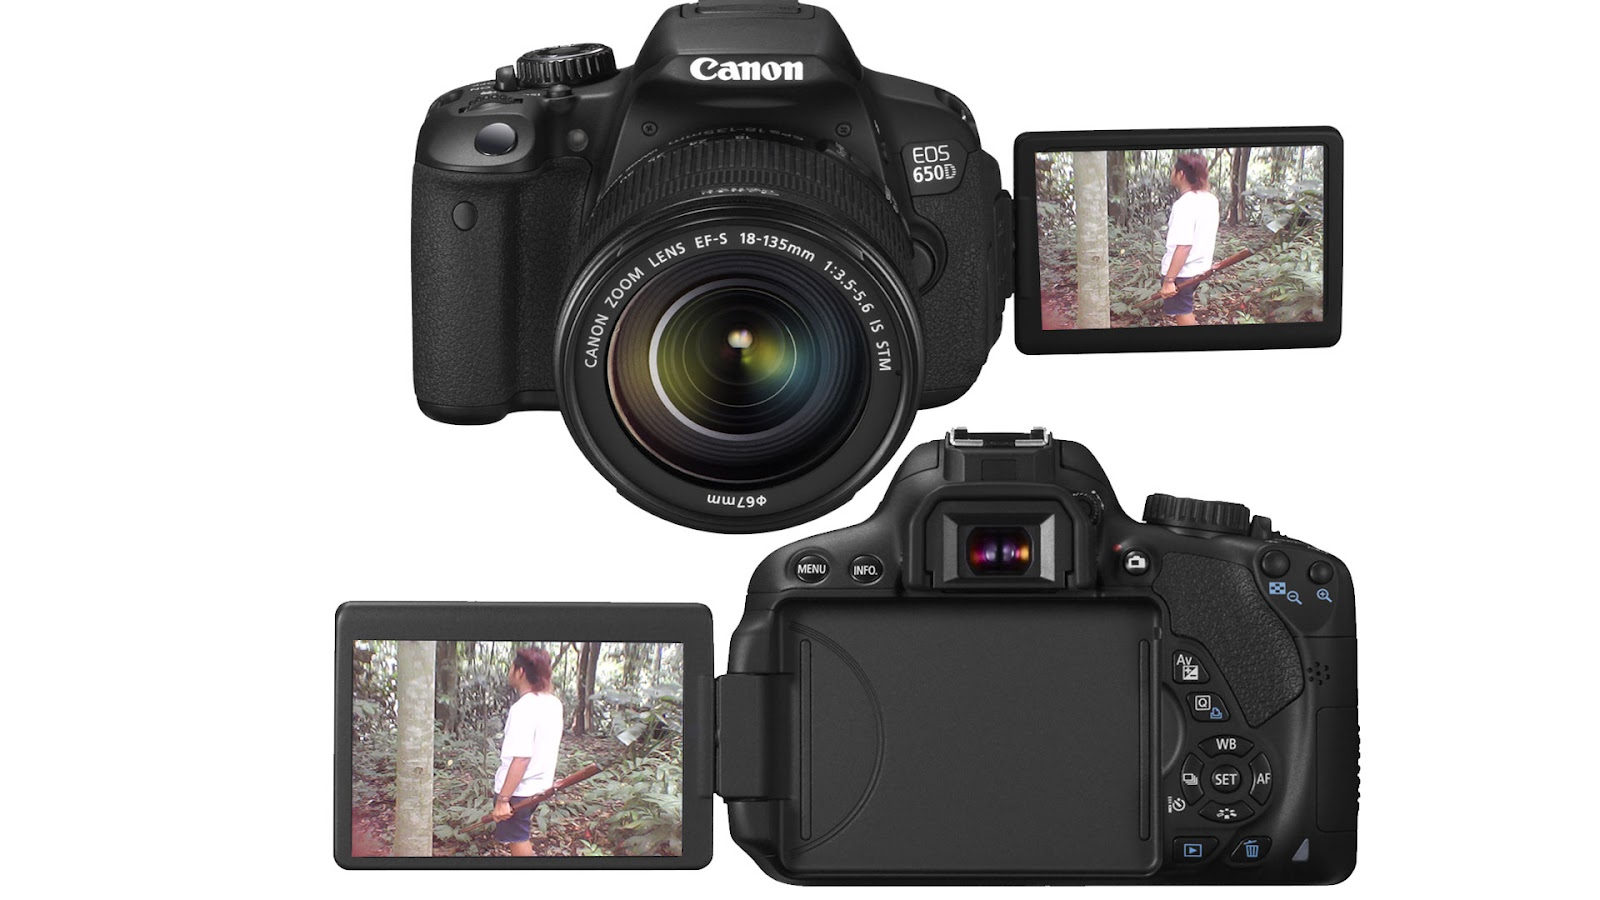 Pin 1920x1080-canon-eos-6d-poster-wallpaper-for-pc-mac-iphone-and-ipad on Pinterest